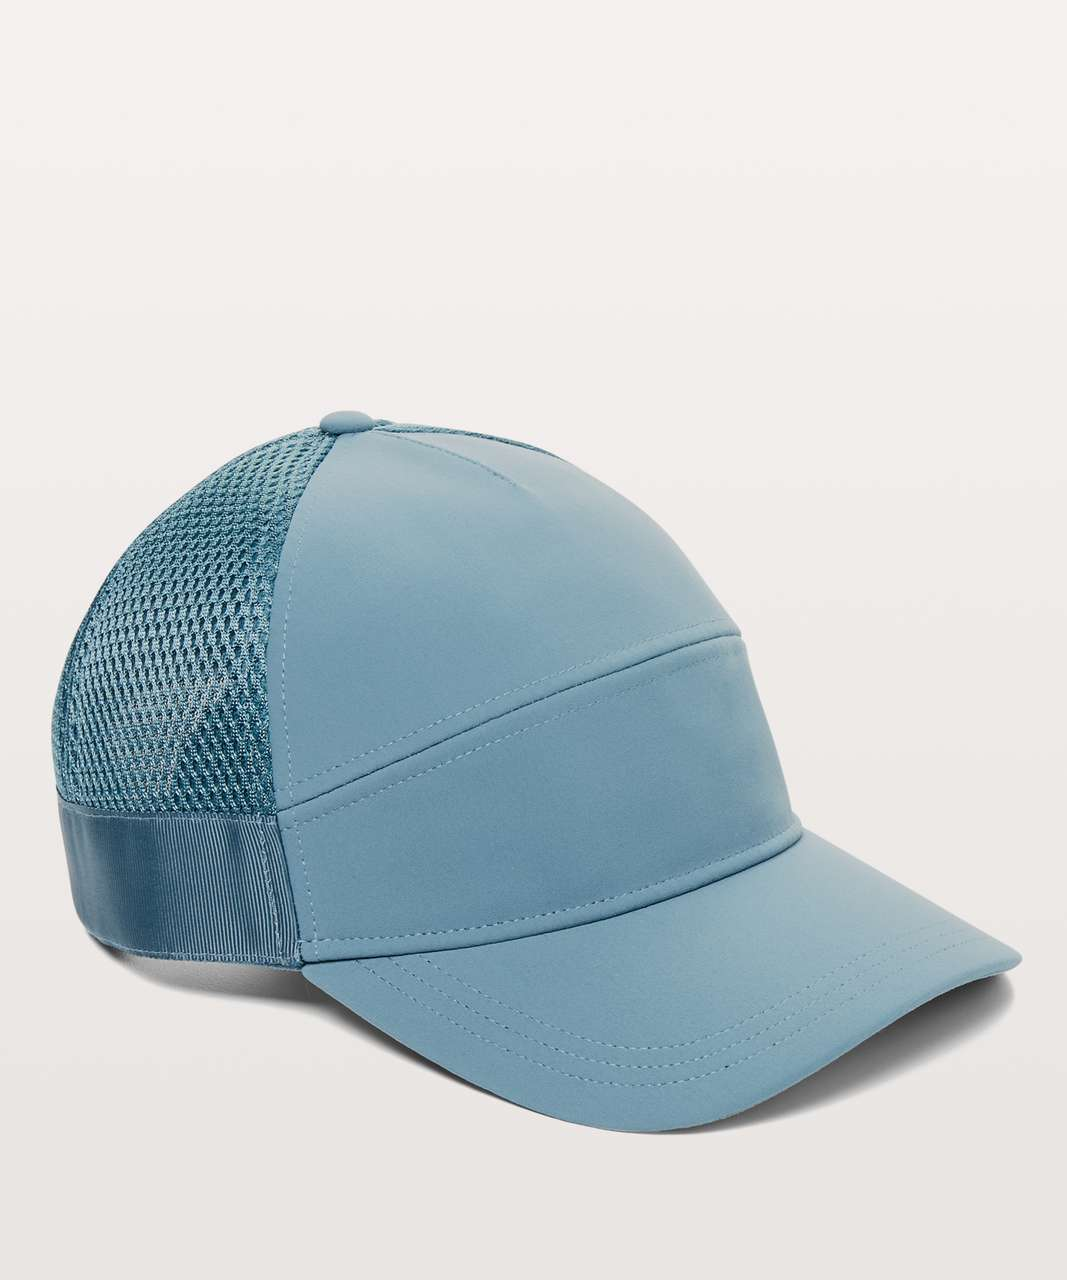 Lululemon Dash & Splash Cap II - Persian Blue